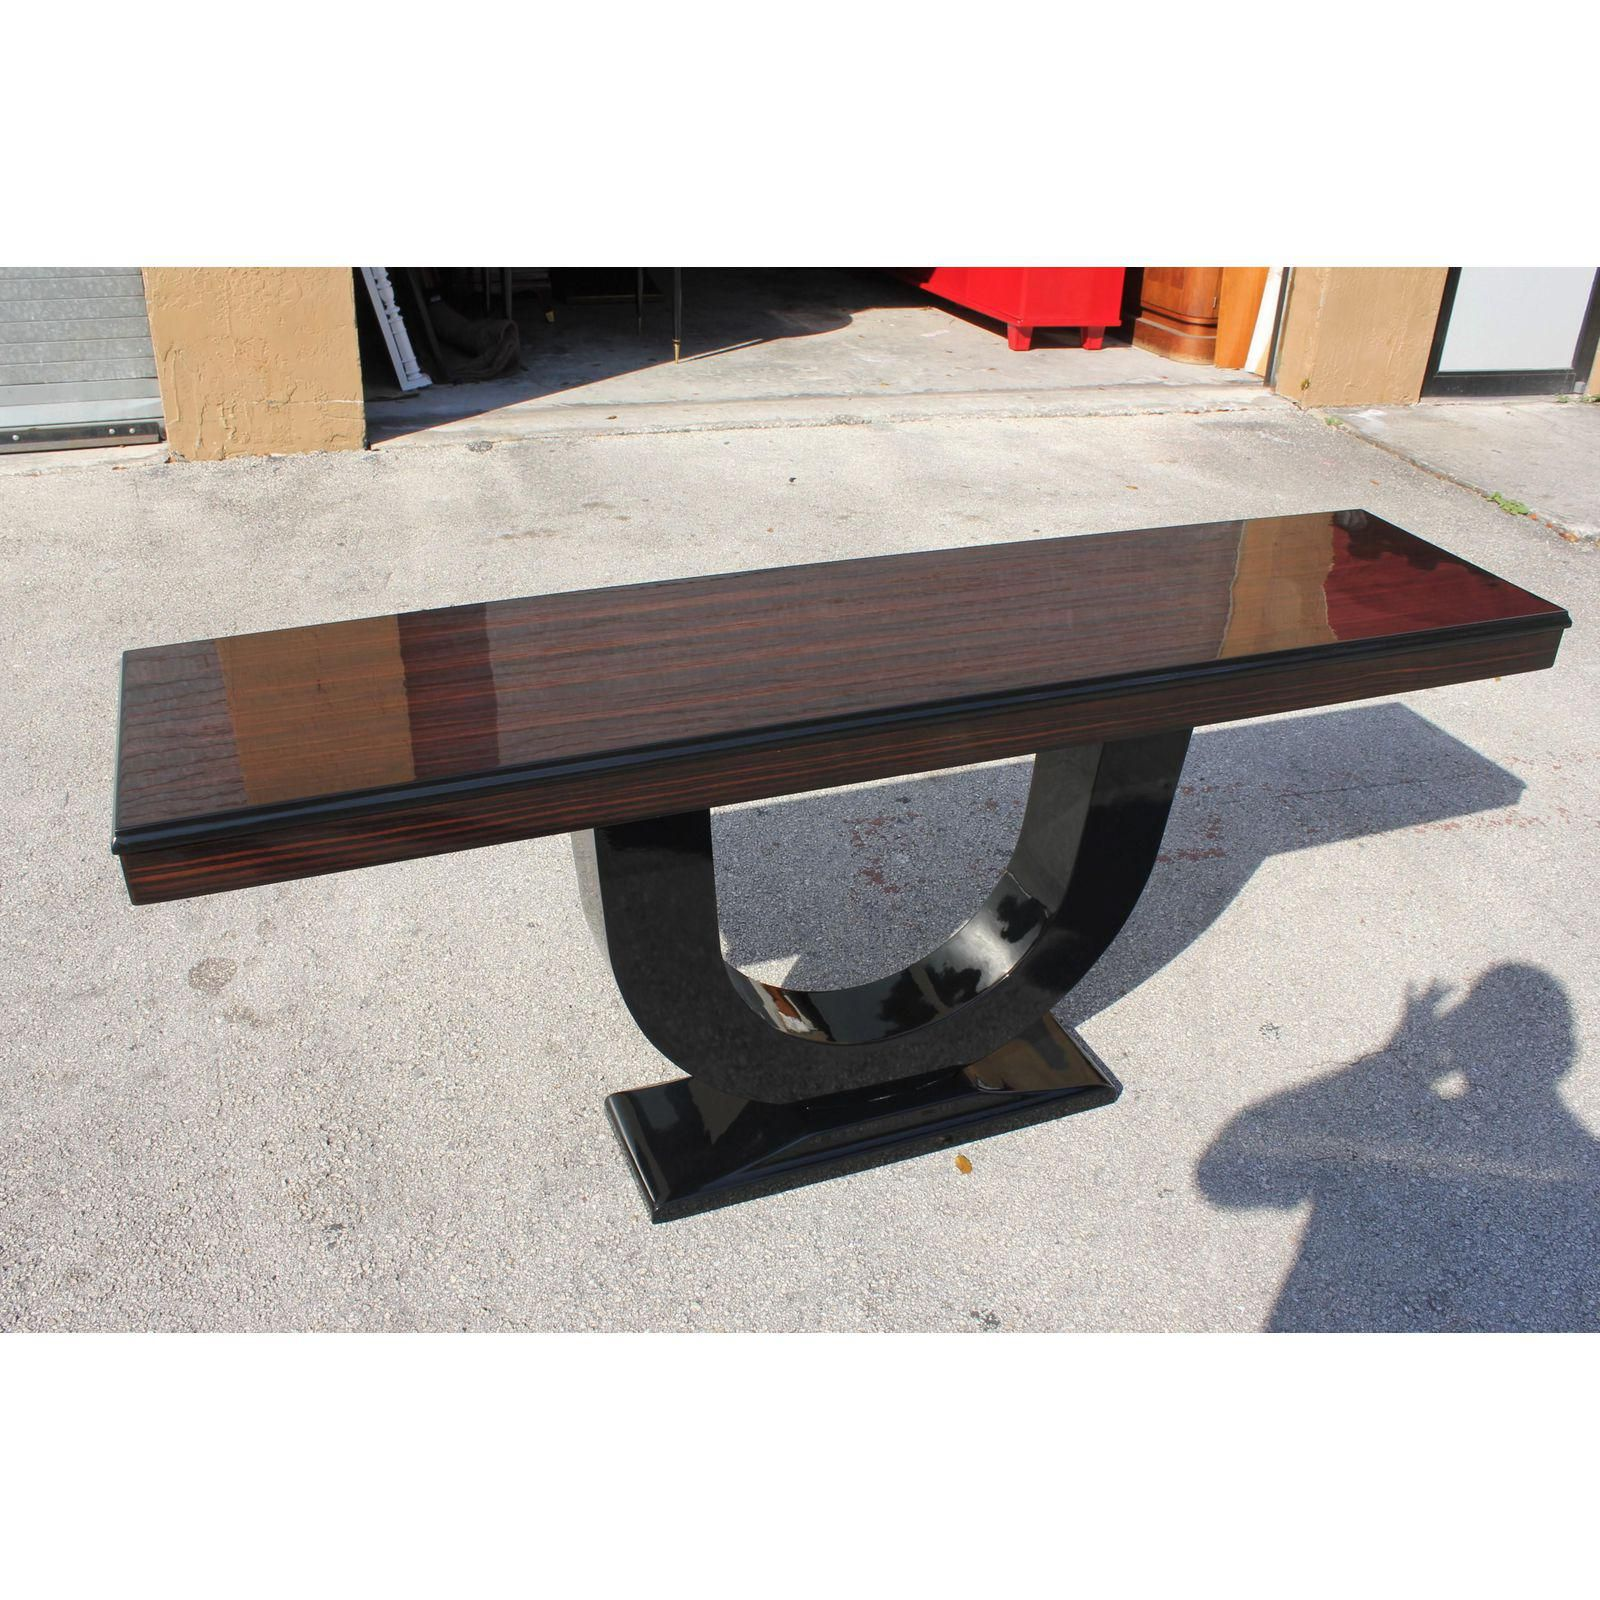 French art deco macassar ebony console table french art console french art deco macassar ebony console table geotapseo Image collections